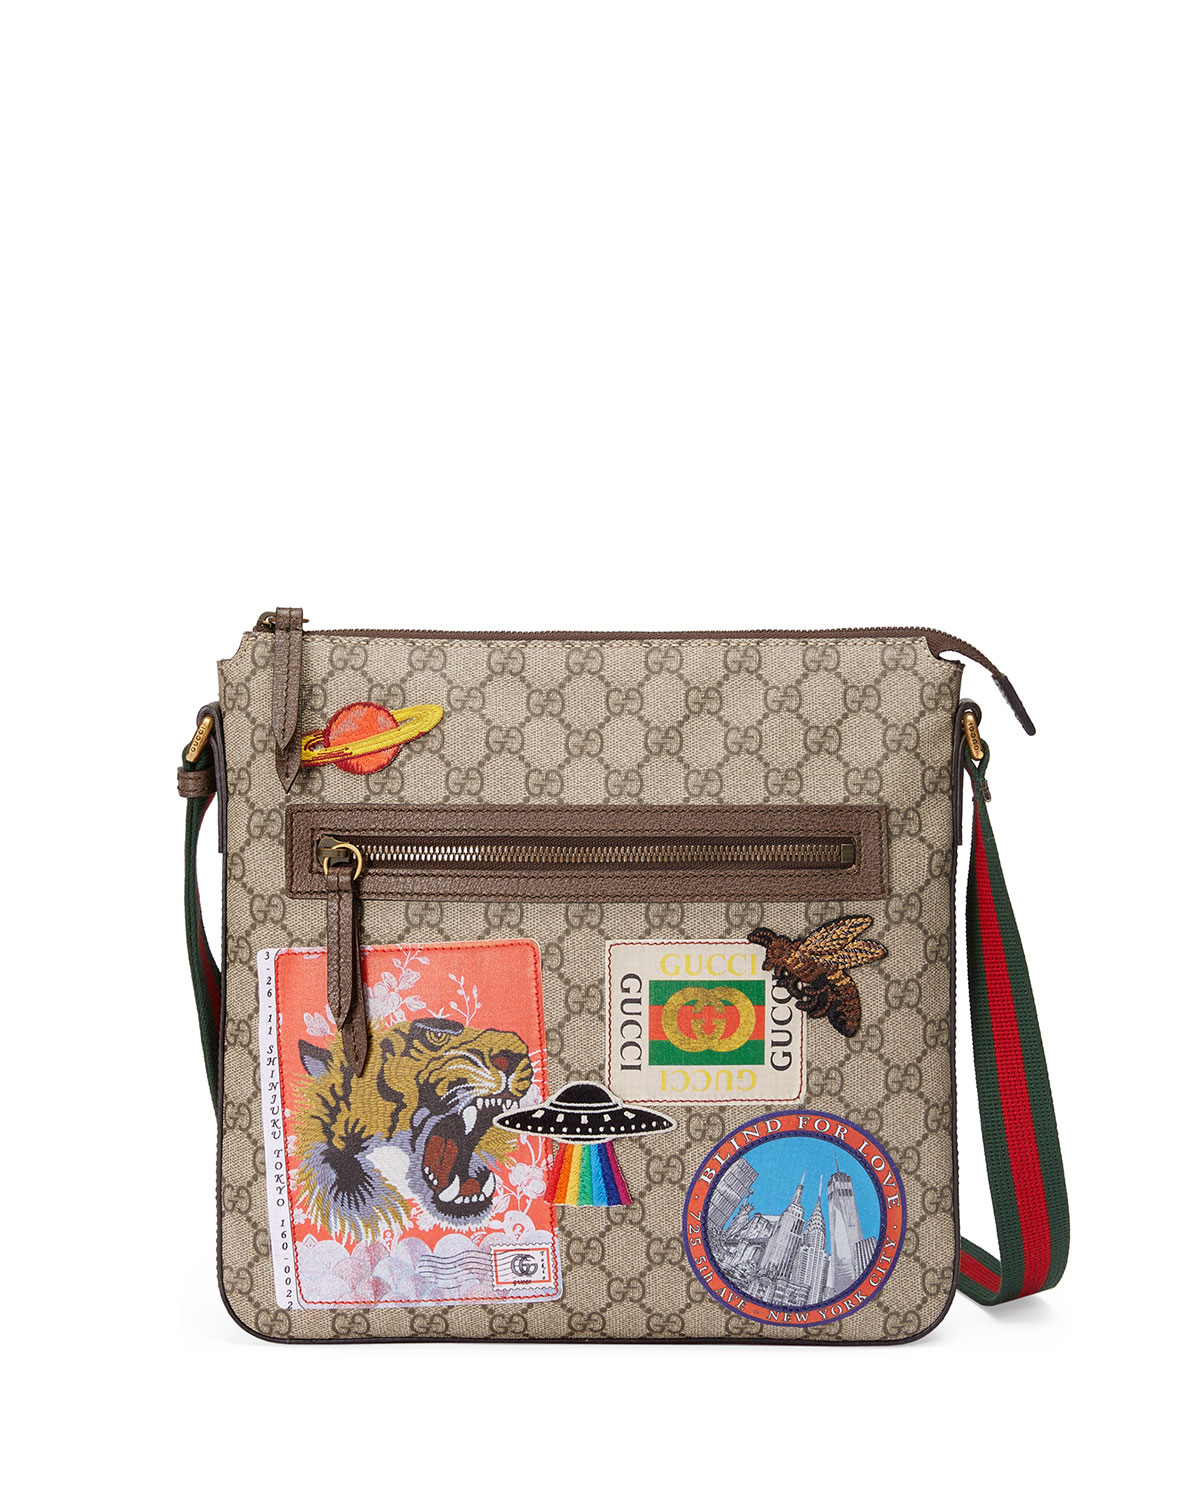 88def38be58f Gucci Gucci Courier Soft GG Supreme Messenger Bag | Neiman Marcus